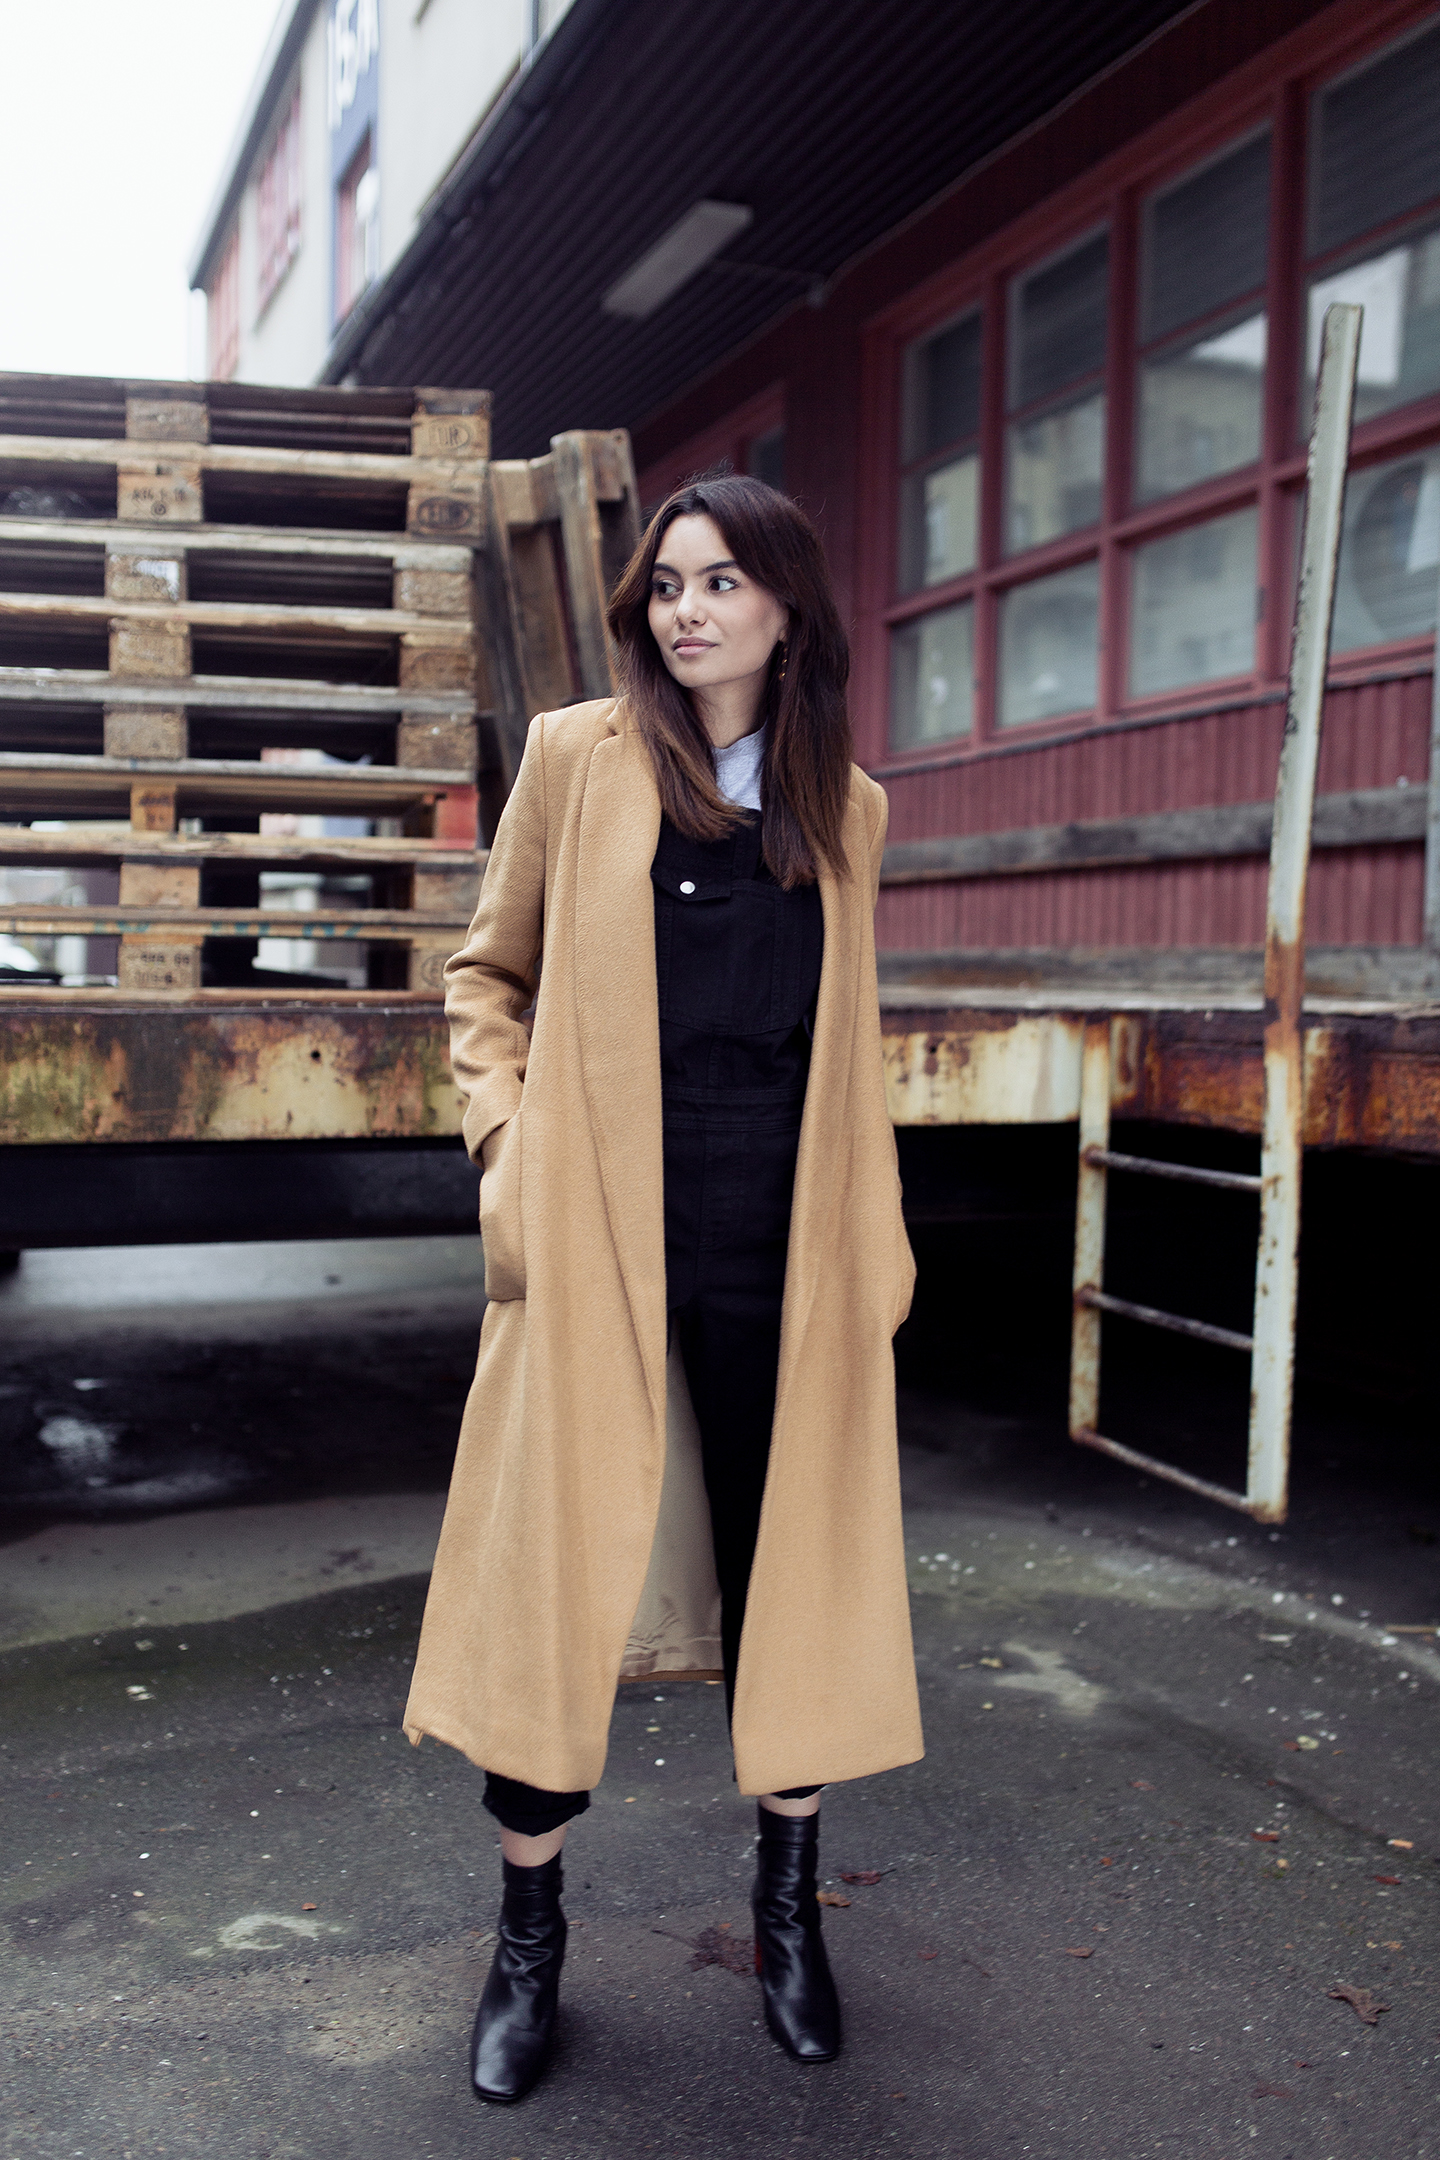 97a358409b72 Funda Christophersen demonstrates exactly how a maxi camel coat should be  worn in this super cute